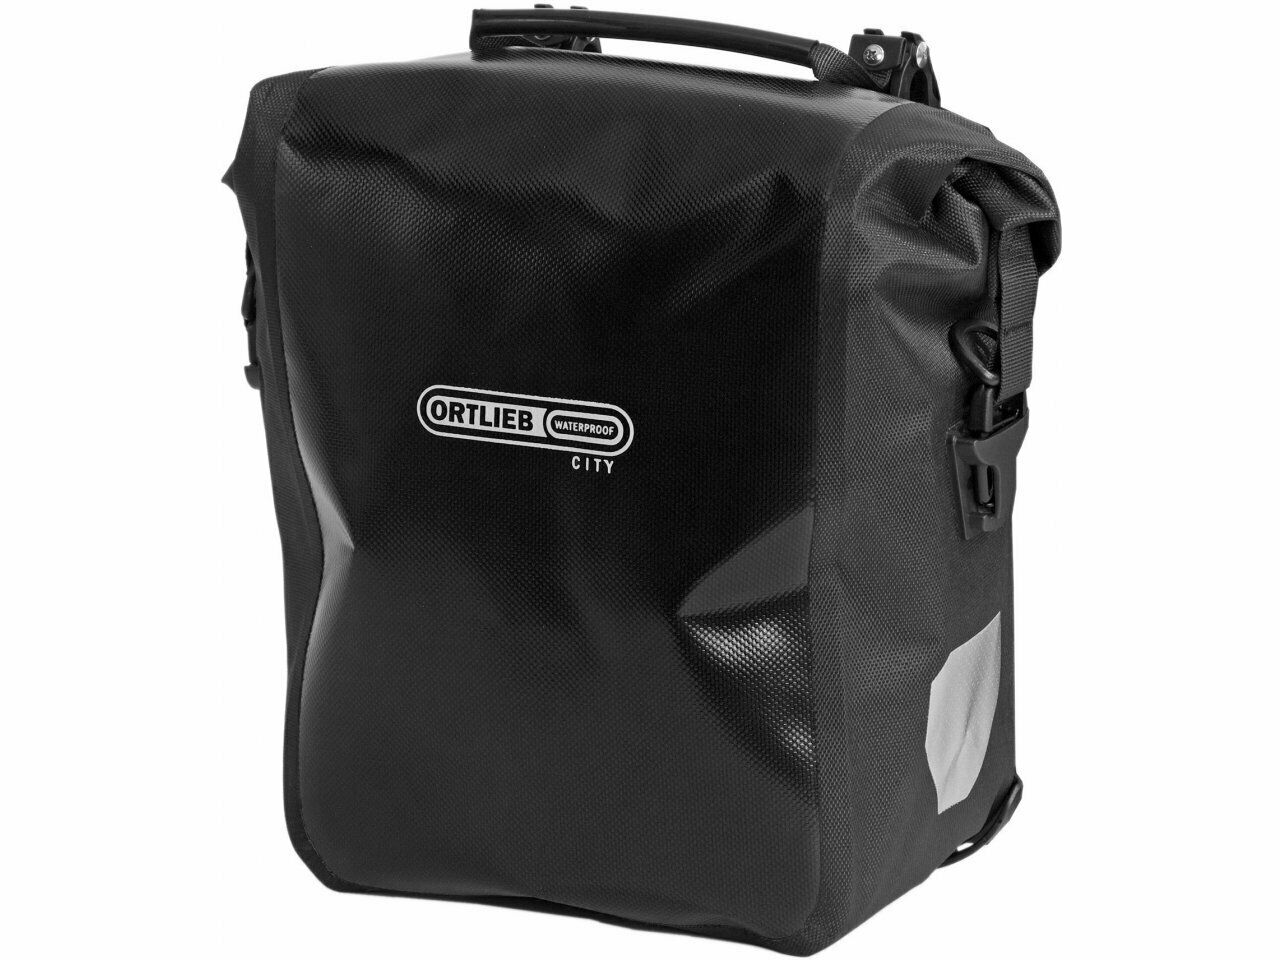 NEW - 2 Ortlieb Front-Roller City Front   Rear  Panniers  Waterproof Pannier Bicy  looking for sales agent